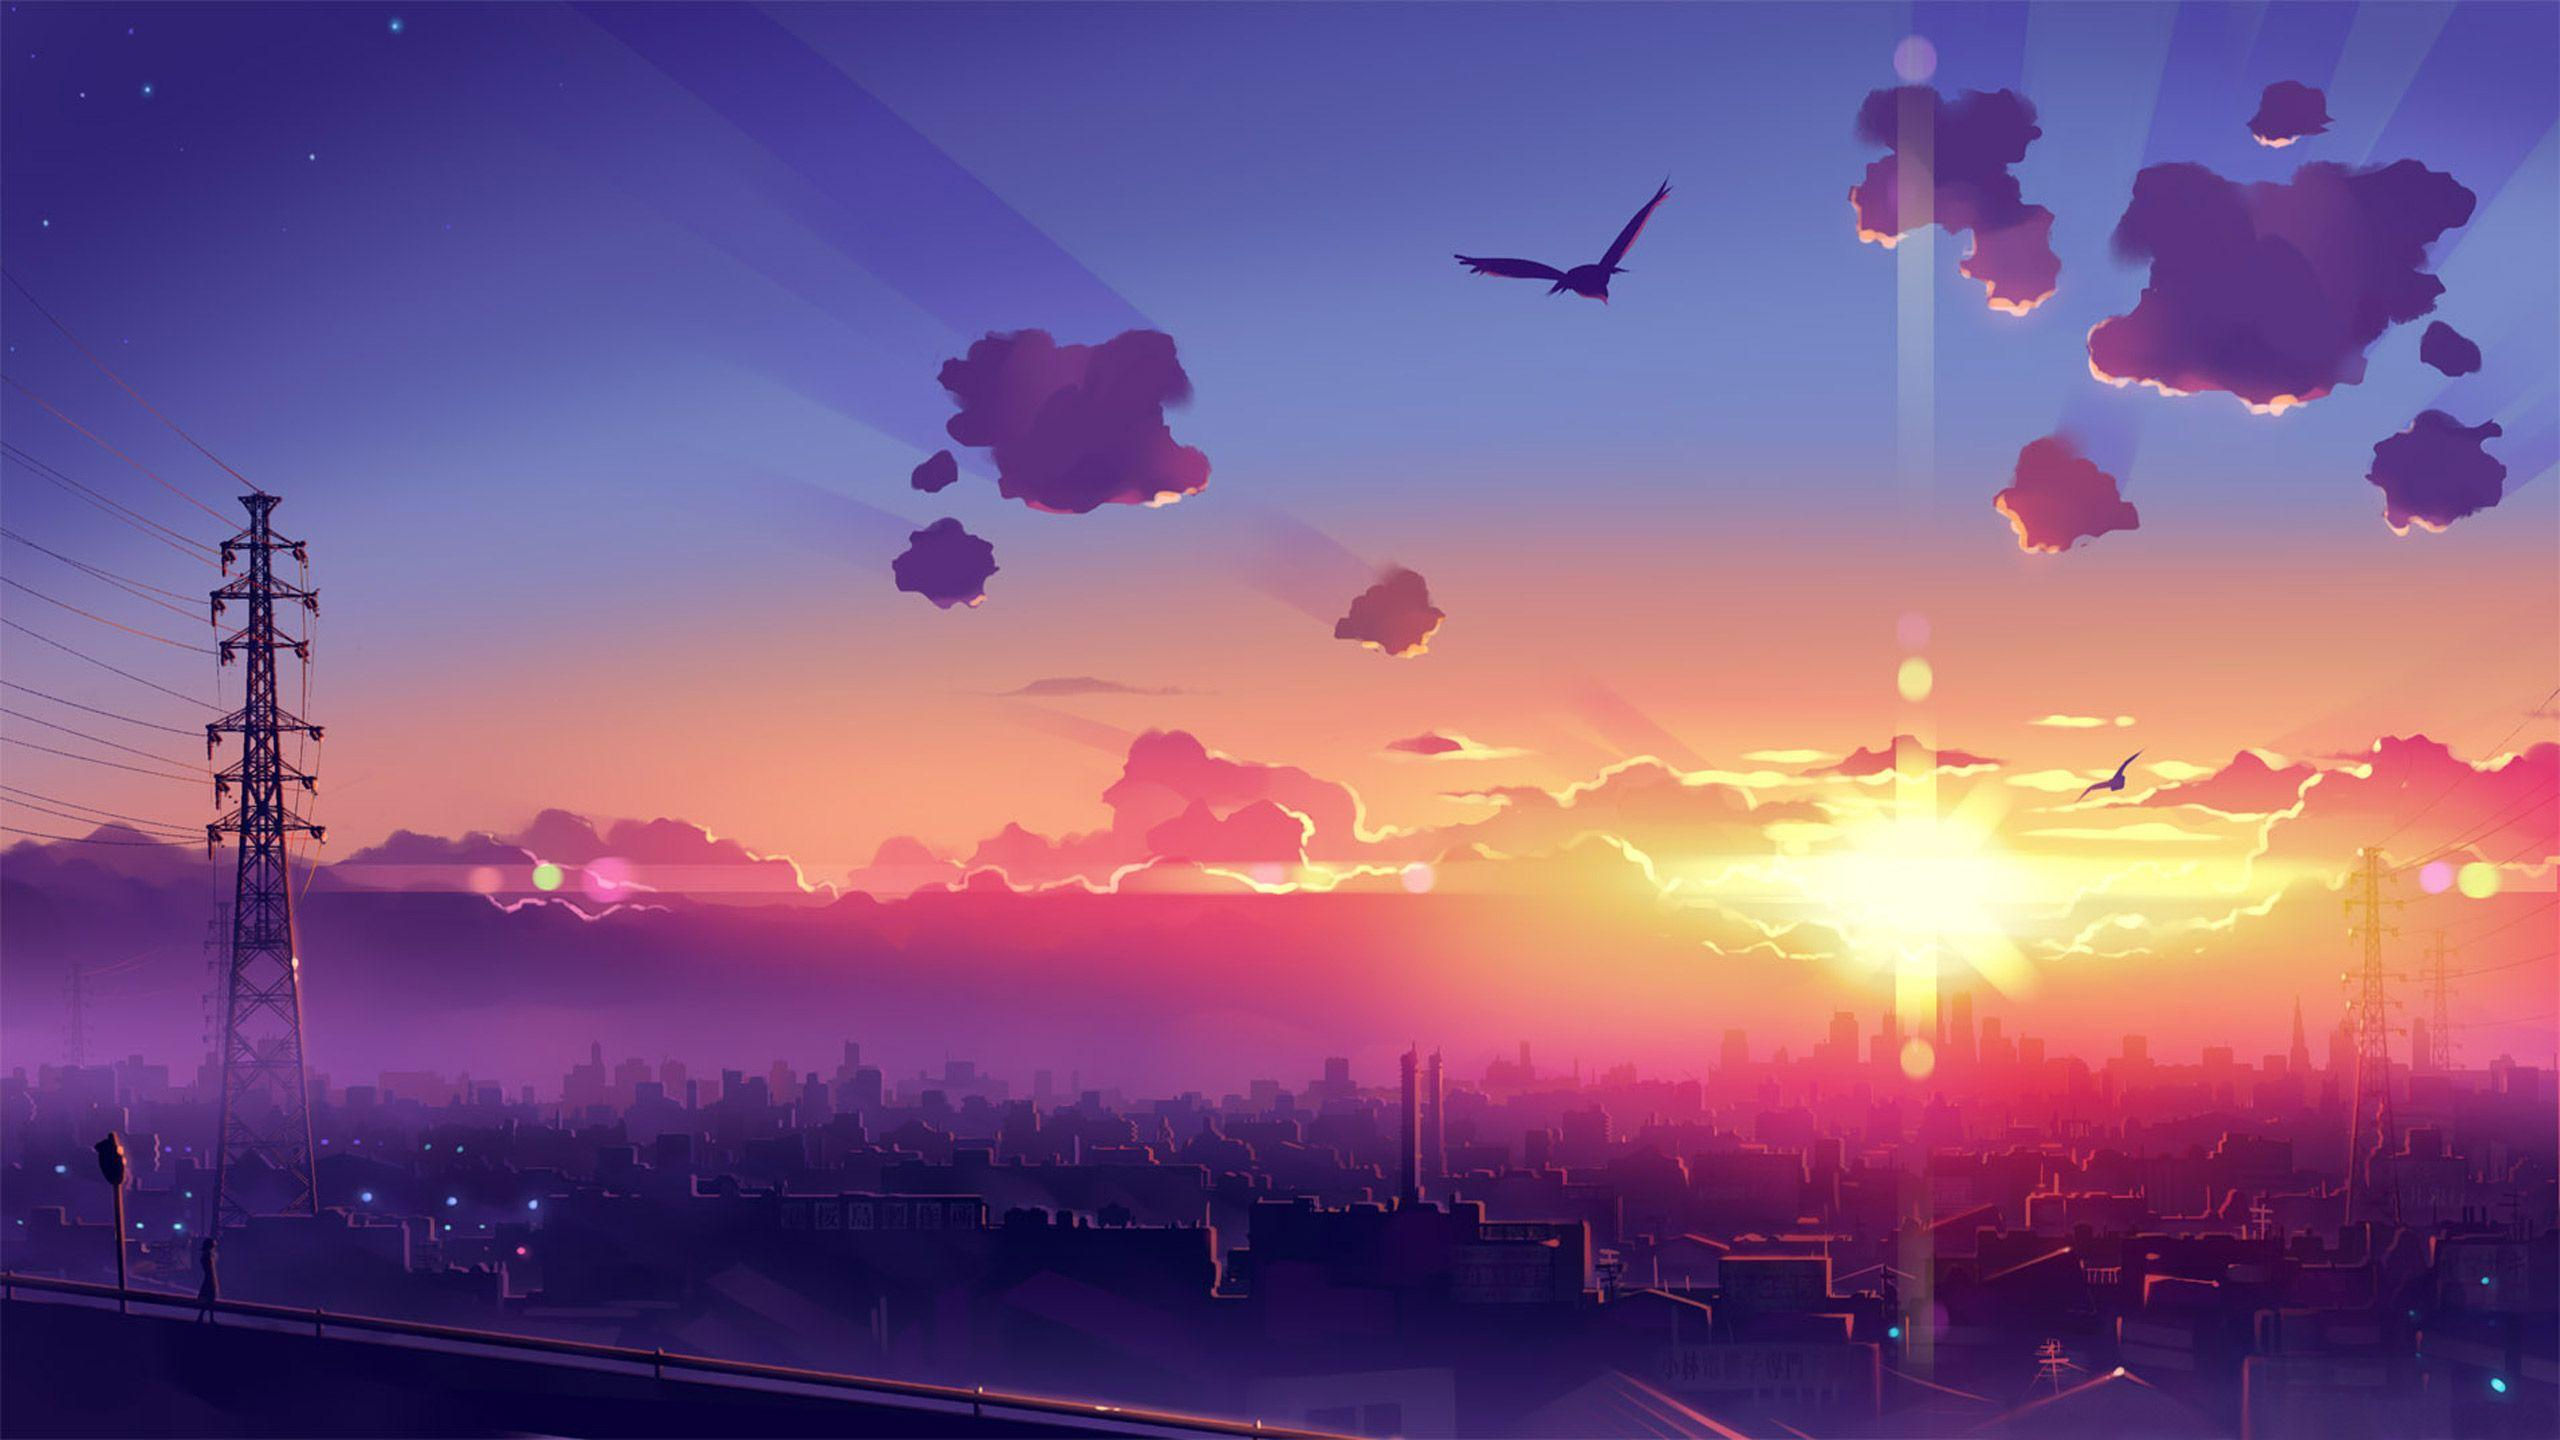 You can download the black. Aesthetic Anime Sunset Wallpapers - Wallpaper Cave